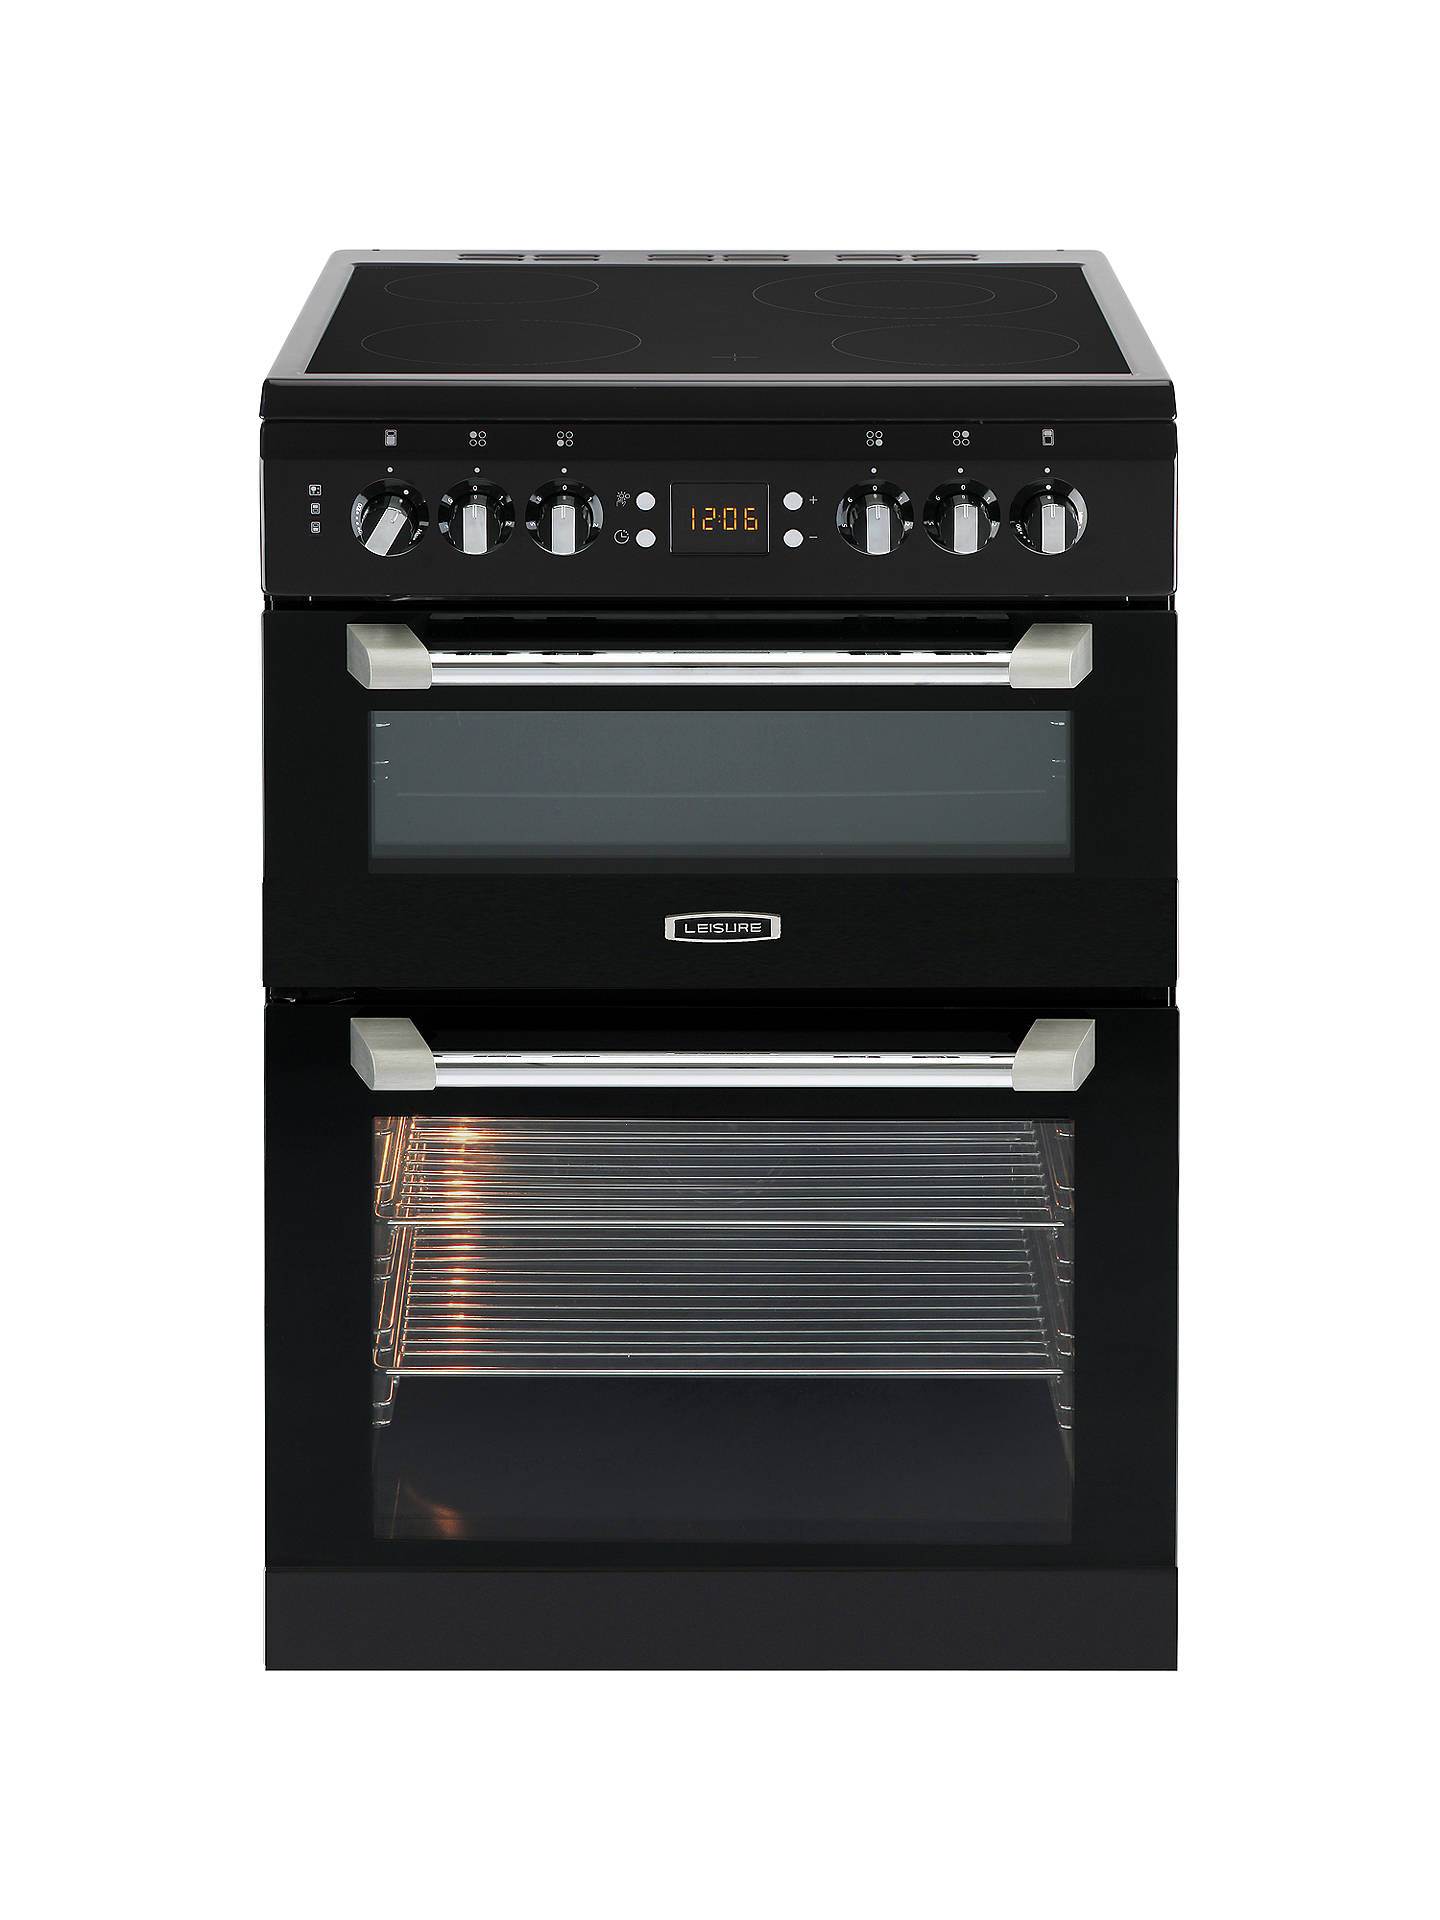 leisure cs60 cuisinemaster freestanding electric cooker at. Black Bedroom Furniture Sets. Home Design Ideas